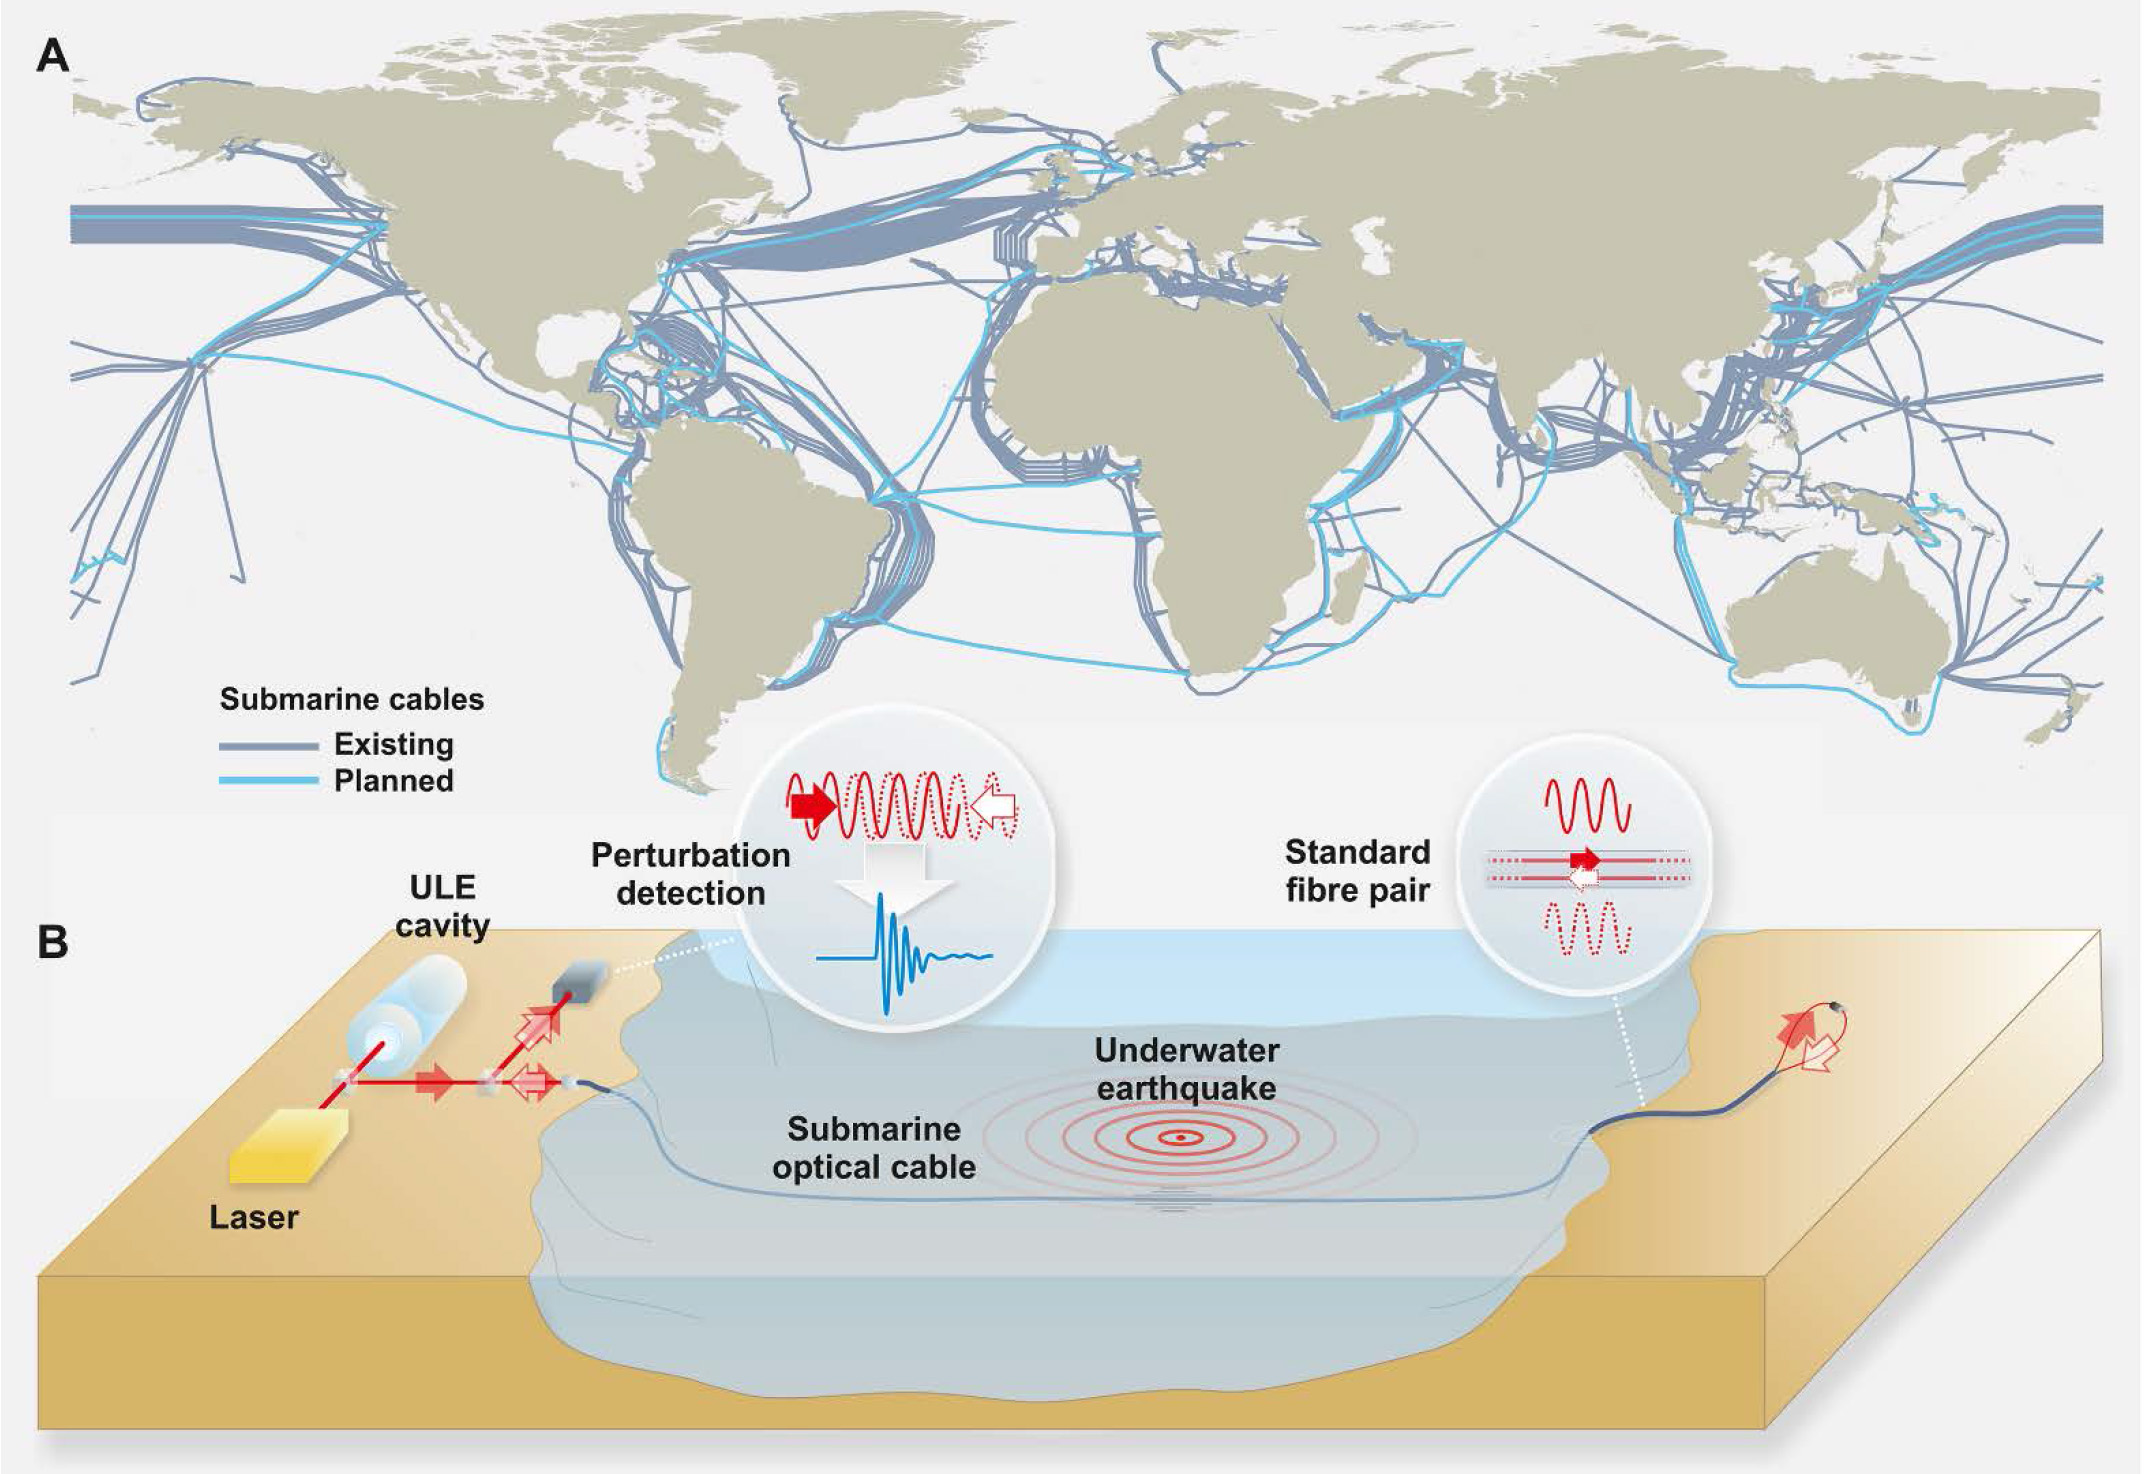 Here's the network of seafloor cables that could be used to detect earthquakes.